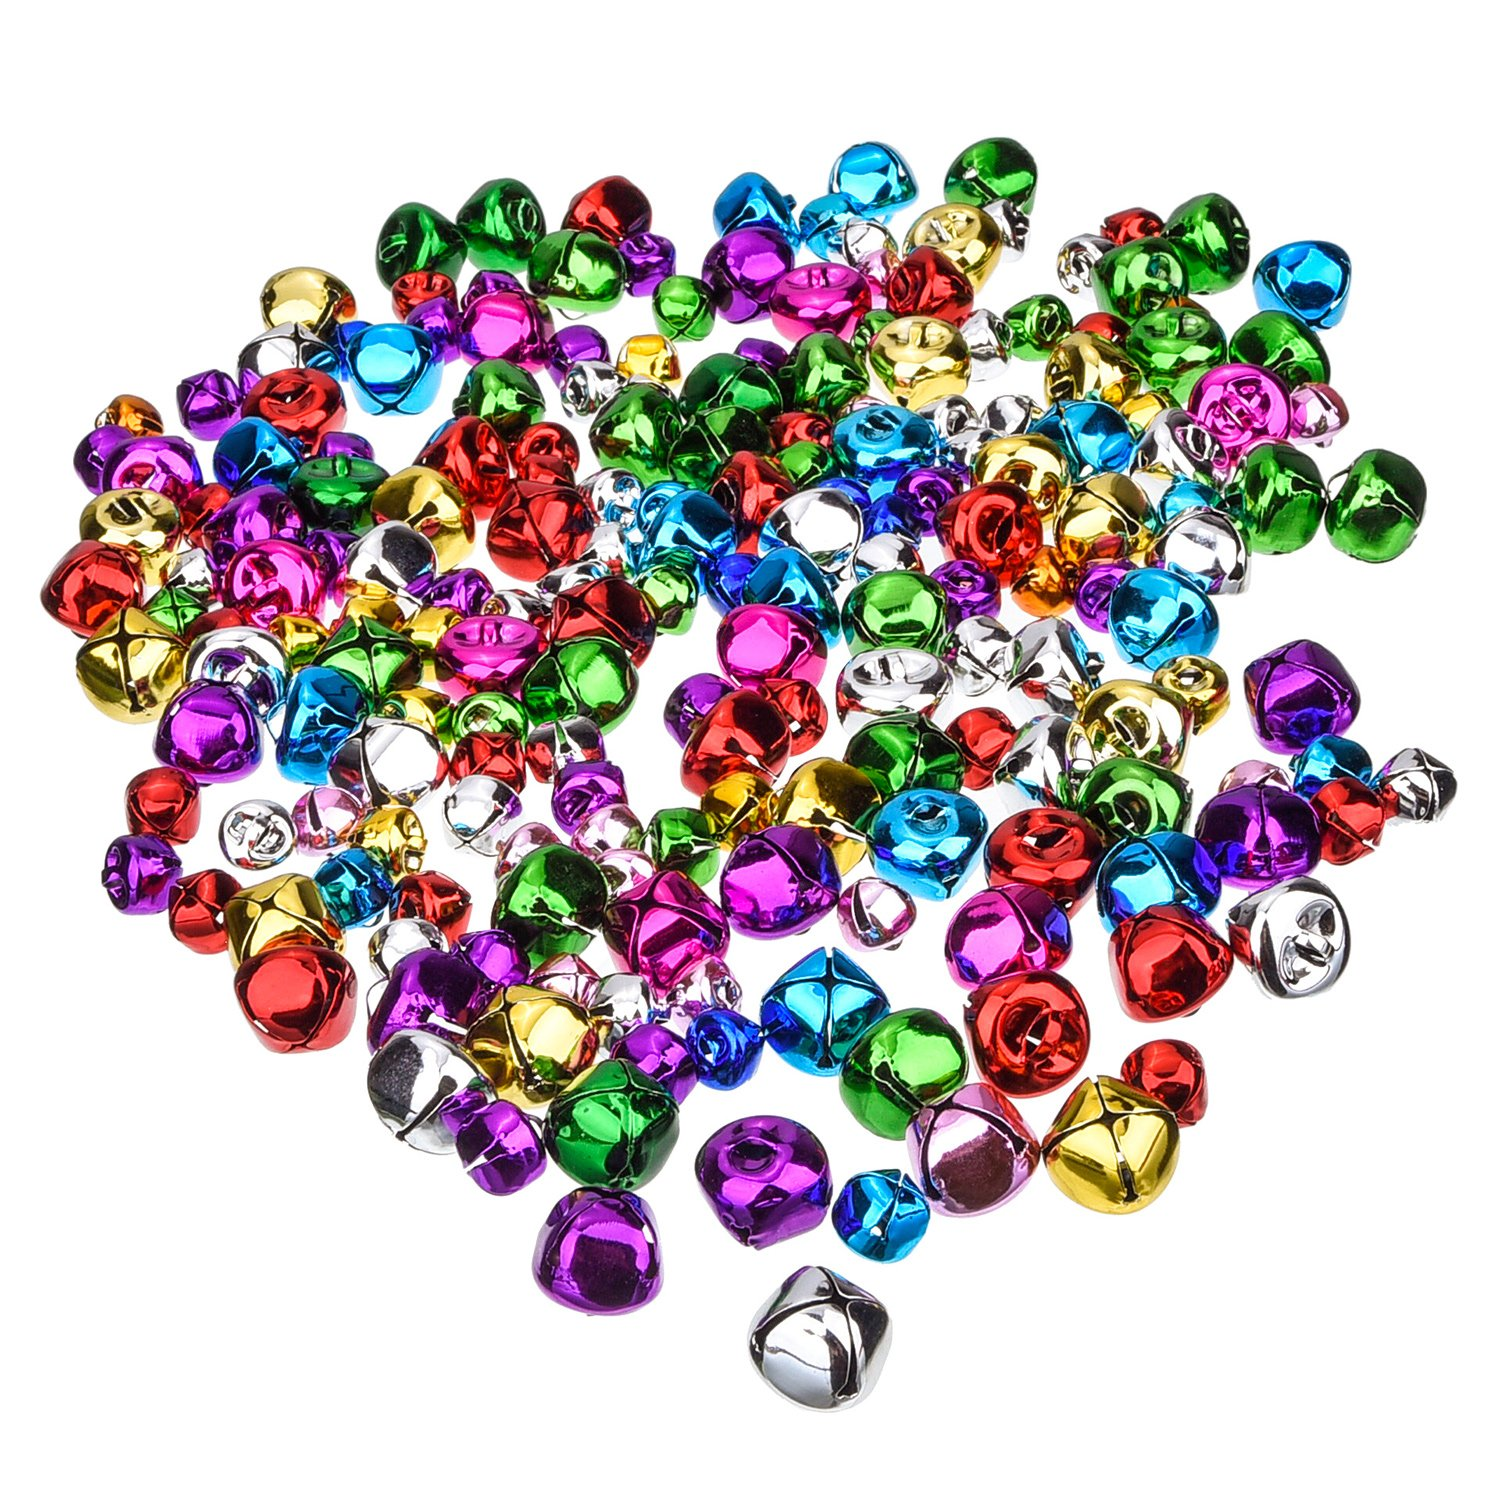 Outus Party Jingle Bells Mini Small Bells Loose Beads Charms, Assorted Colors, 200 Pieces (10 mm, 15 mm)